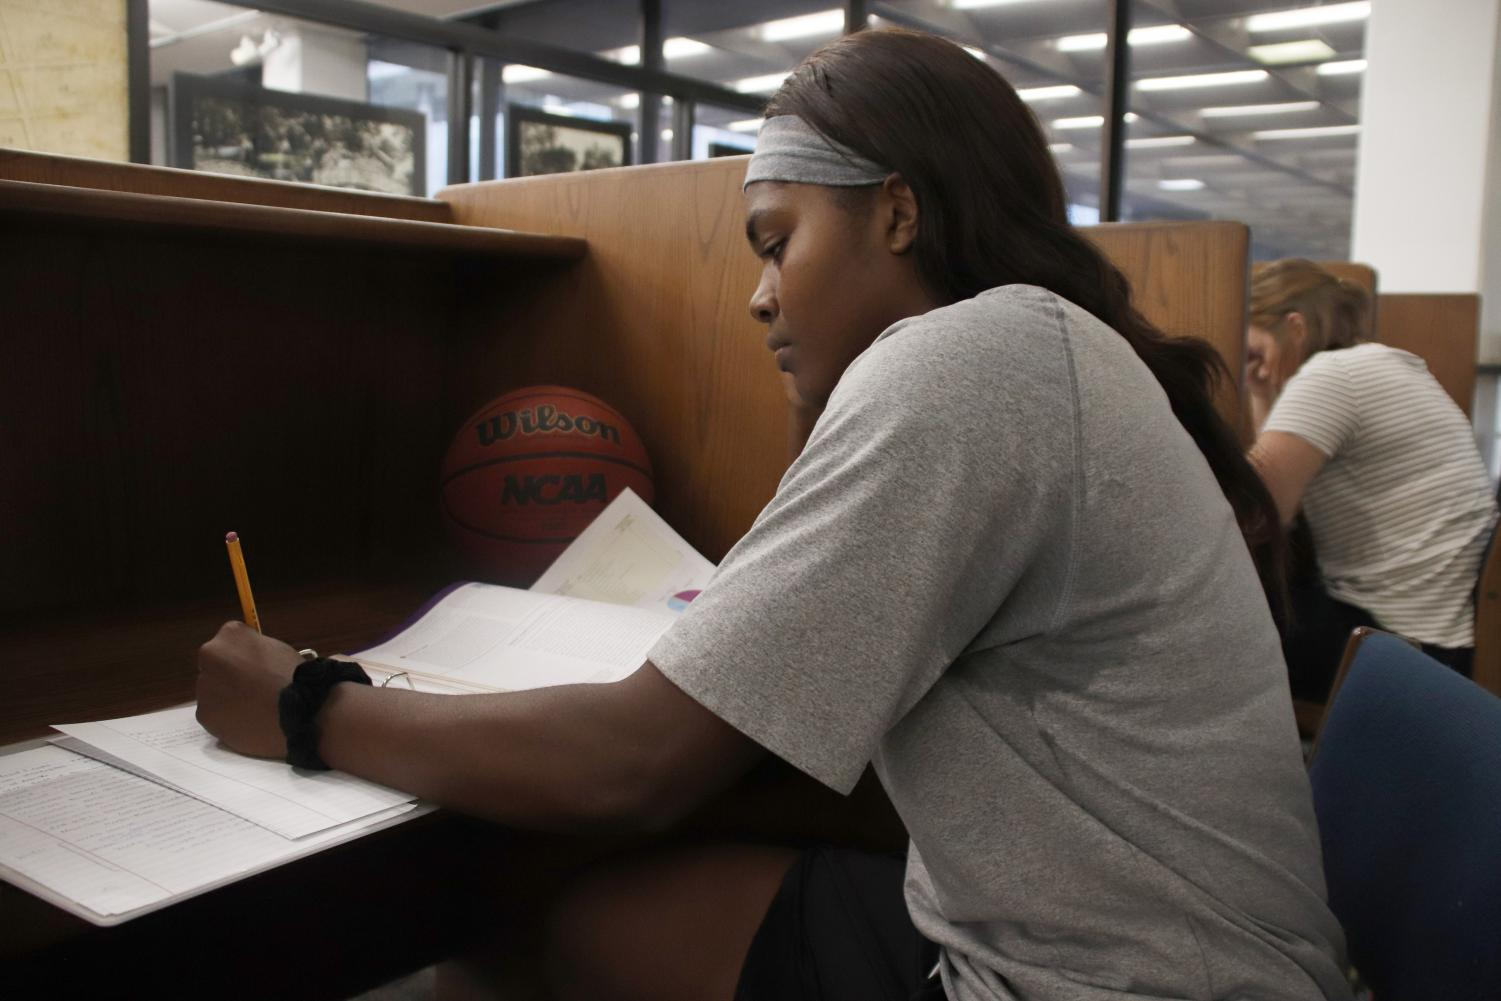 For Ashailee Brailey, a senior general studies major, the daily life of a student-athlete requires both constant basketball practice and studying.